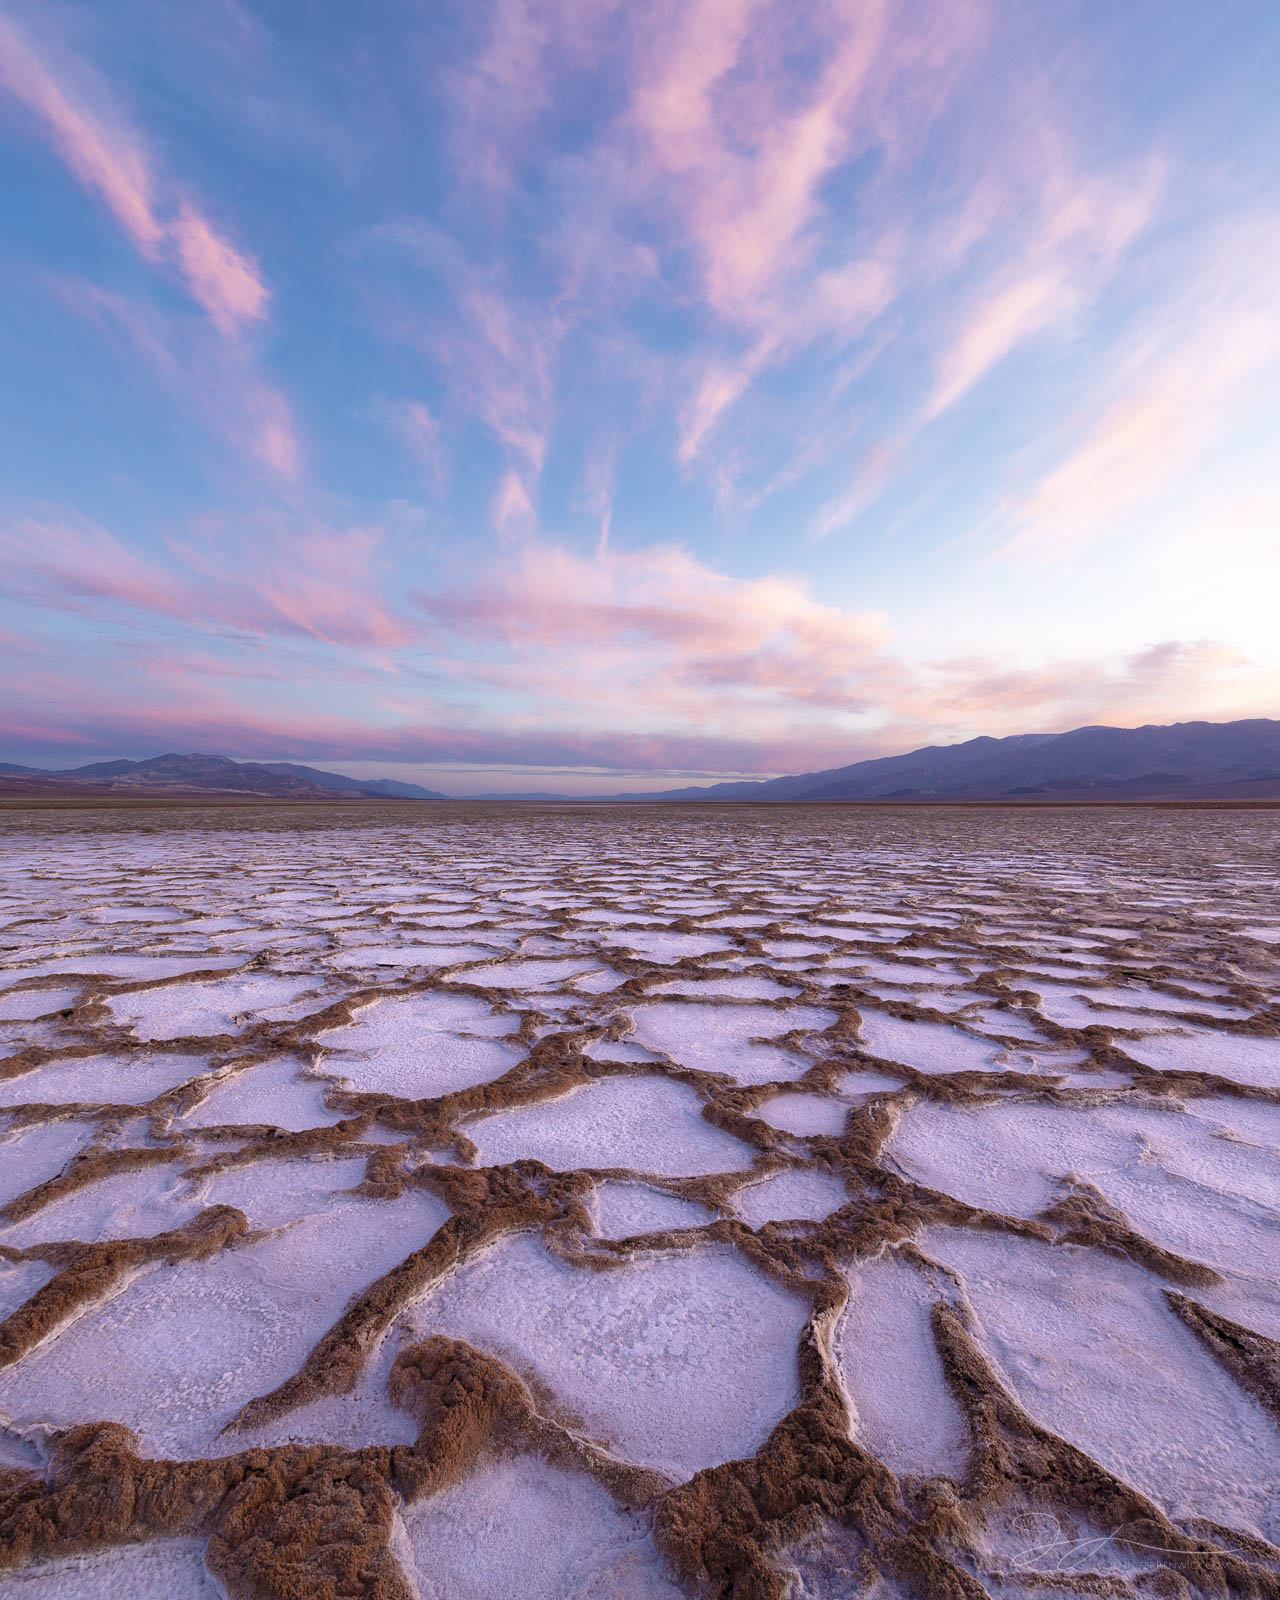 Salt circles take on a pink hue during sunset in Death Valley National Park.